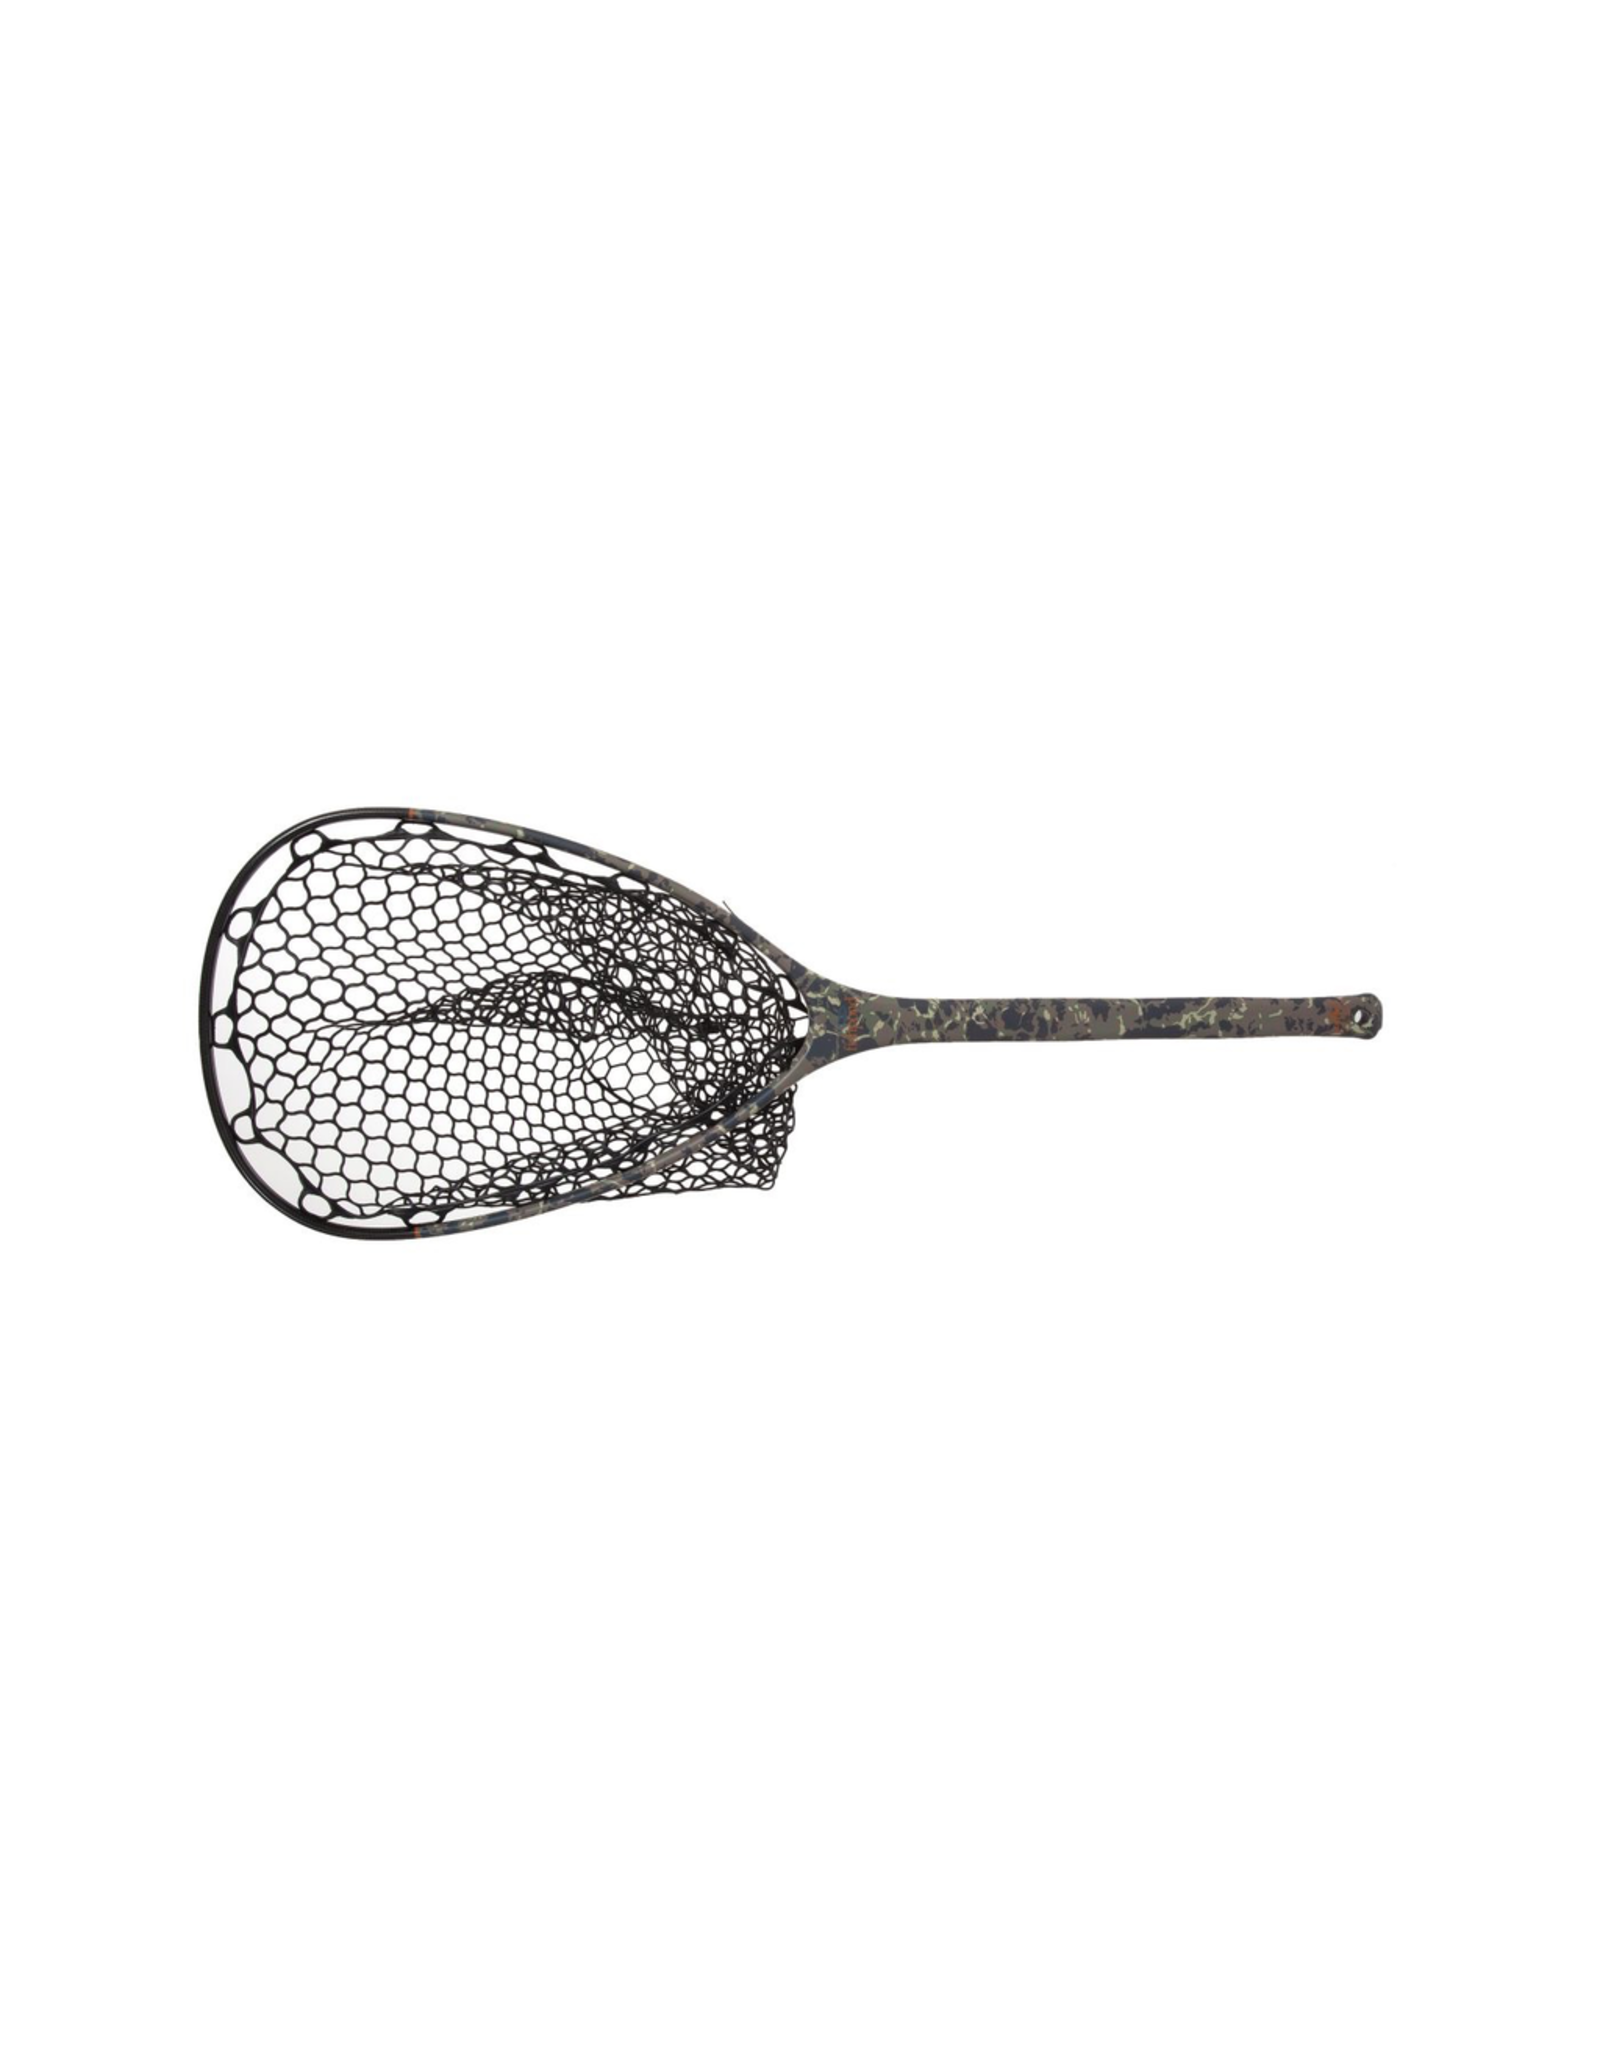 Fishpond Nomad Mid-Length Net Riverbed Camo